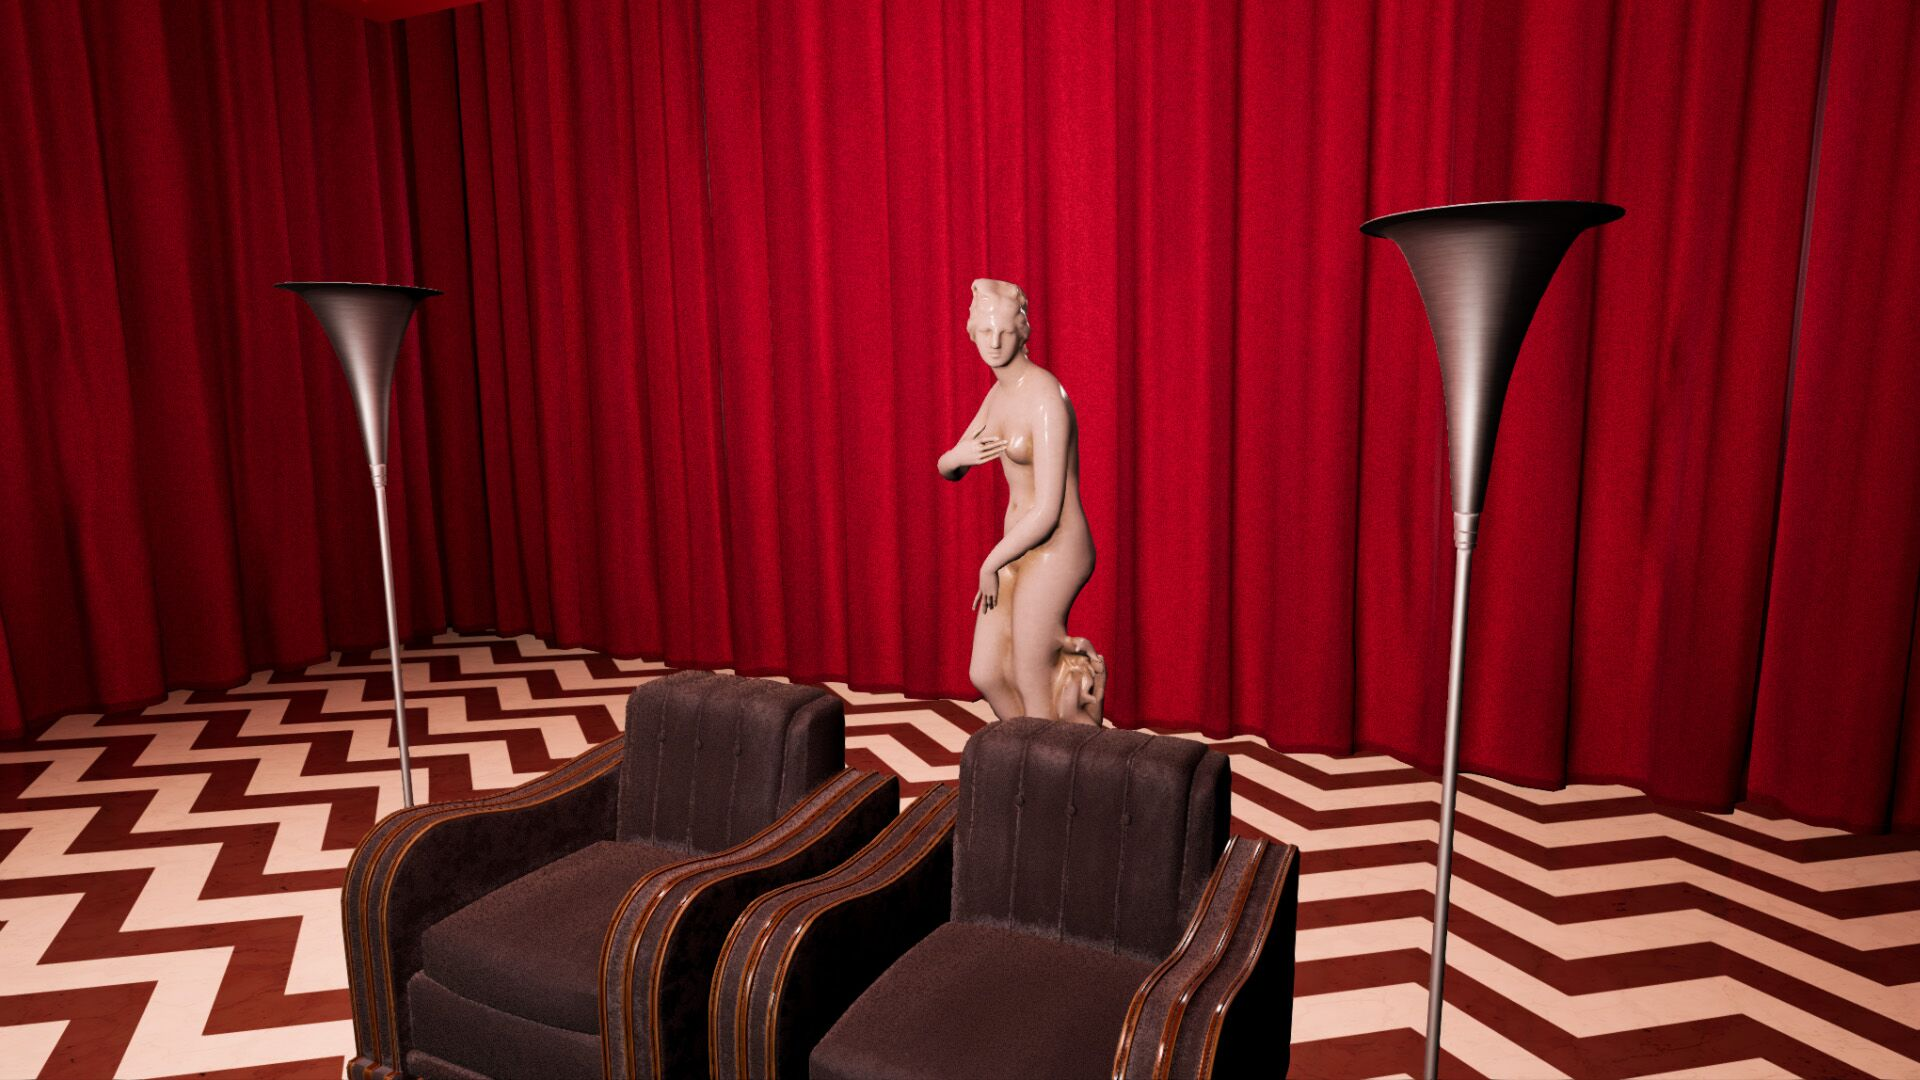 [News] Twin Peaks VR Set For Launch